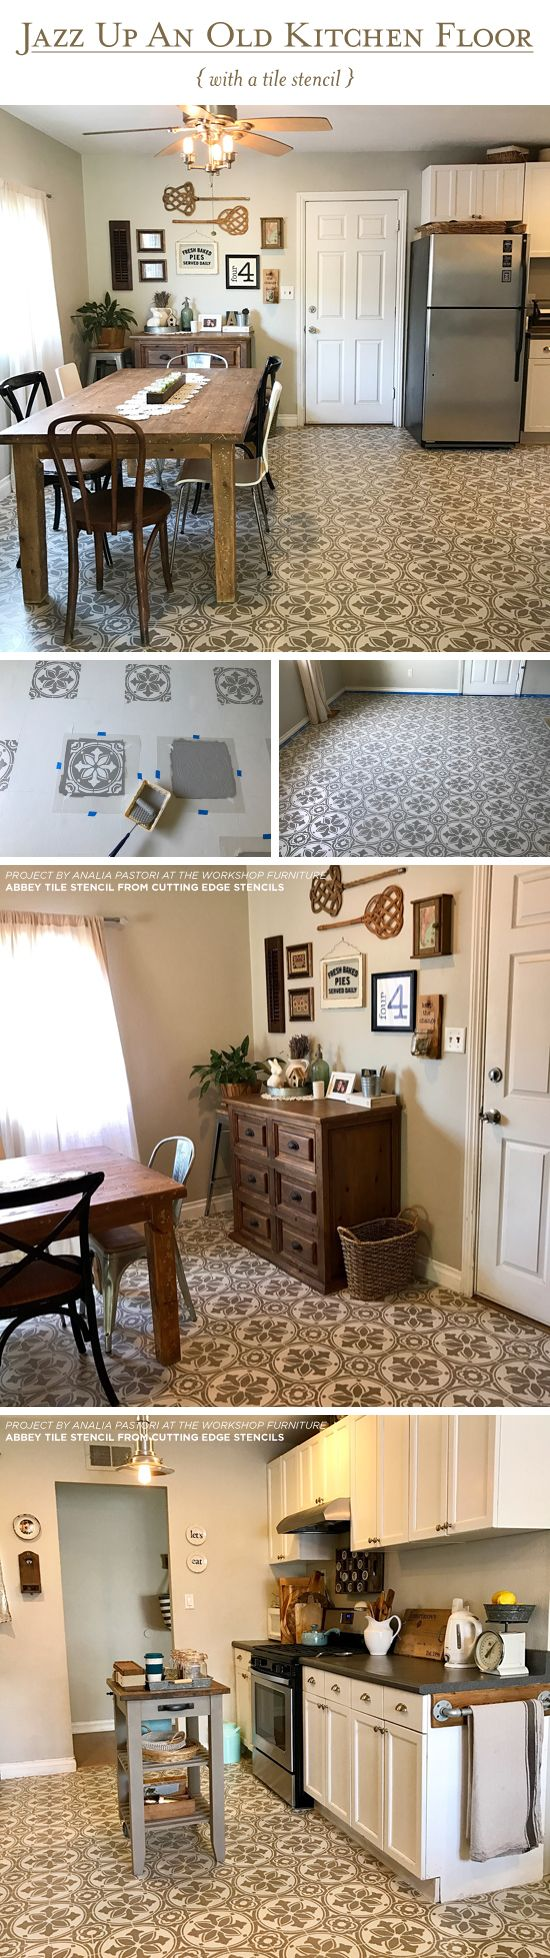 Cutting Edge Stencils Shares A DIY Stenciled And Painted Linoleum Kitchen  Floor Using The Abbey Tile Stencil.